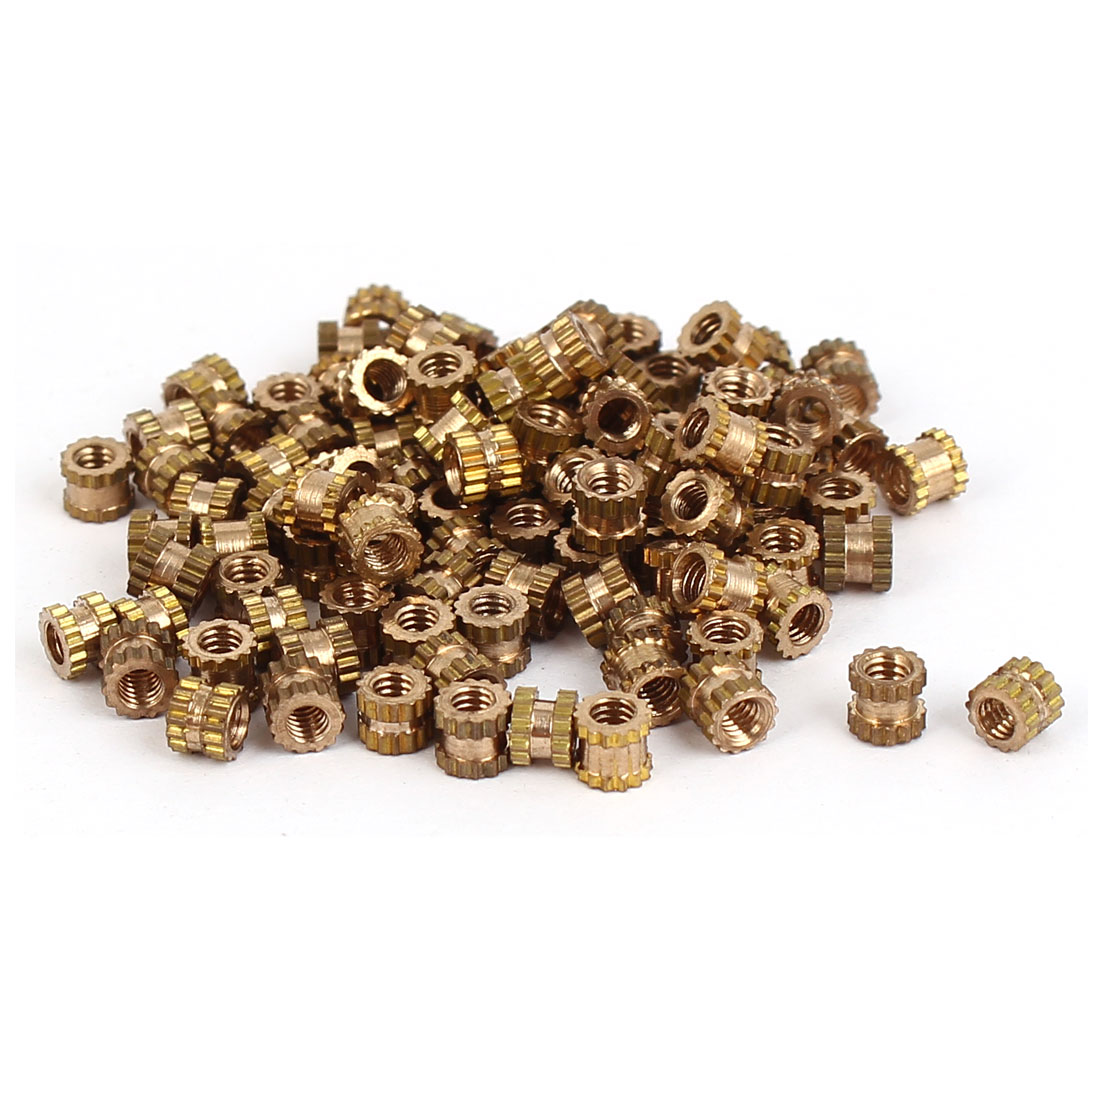 UXCELL 100Pcs/lot <font><b>M2x3mm</b></font> Pitch 0.4mm Brass Cylinder Knurled Threaded Round Insert Embedded Nuts image